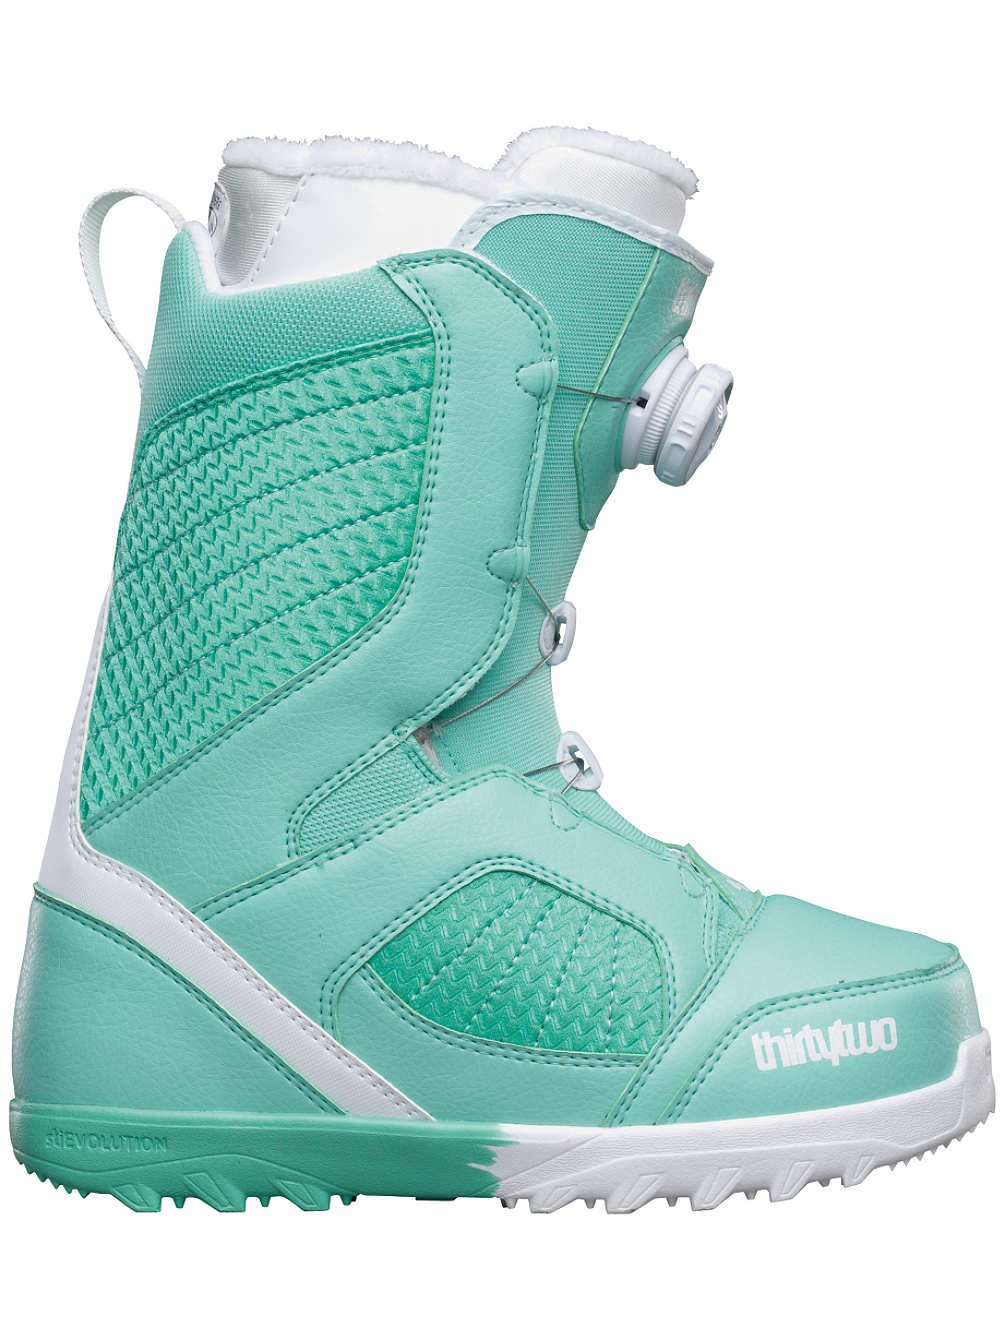 thirtytwo STW BOA W's 16' Boots, Mint, Size 9